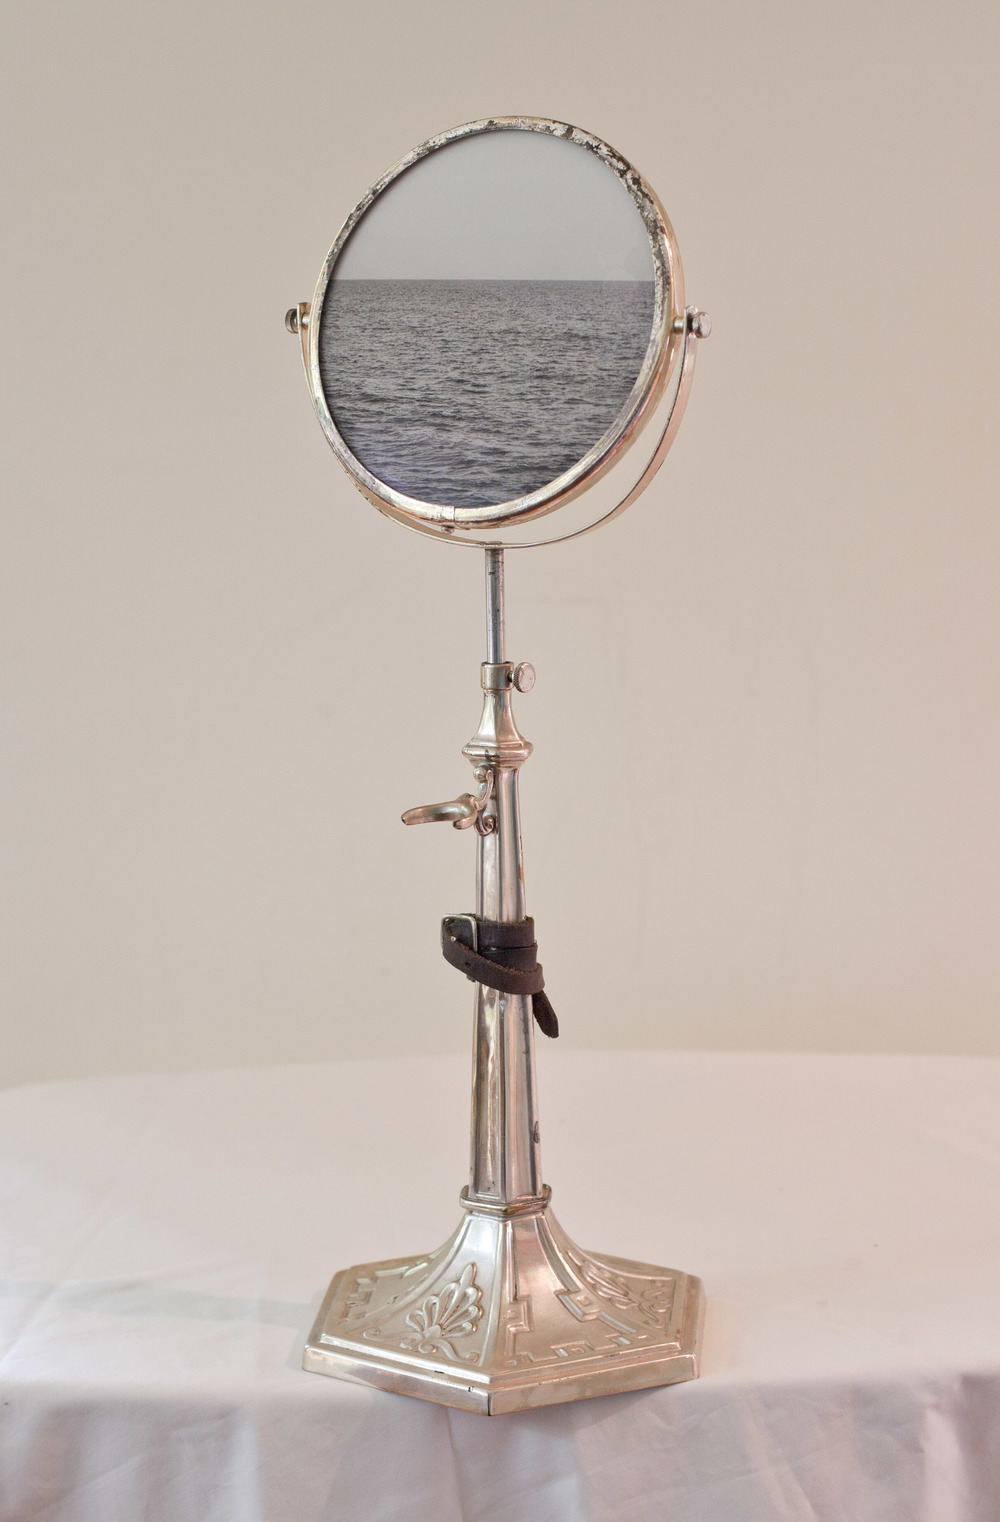 Bound for Glory          Pigment print, antique shaving mirror